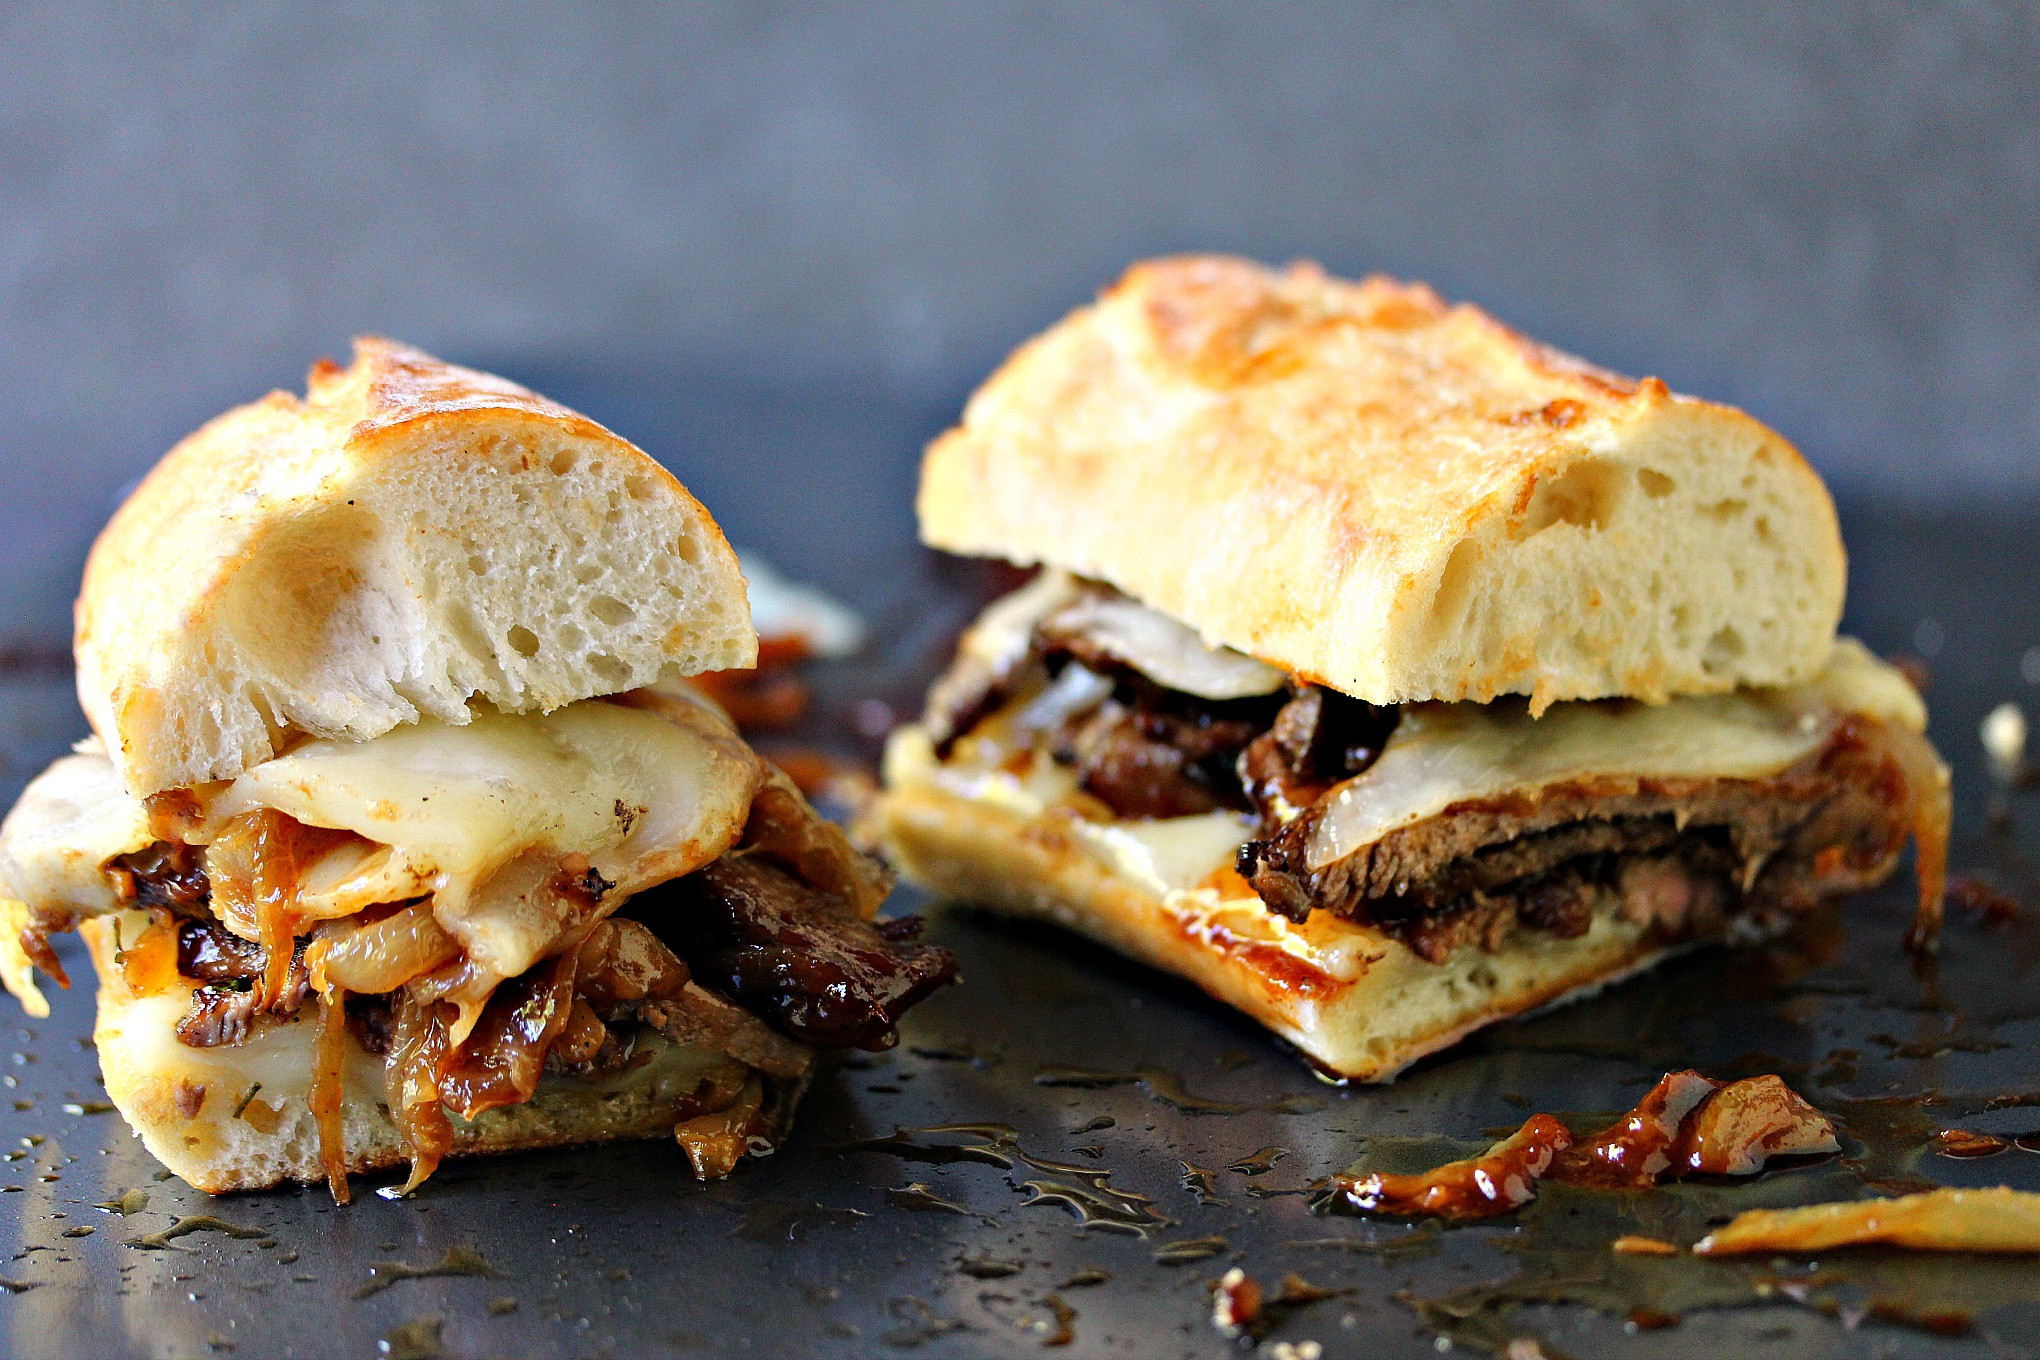 Steak And Cheese Sandwiches  Steak Sandwiches with Caramelized ions and Provolone Cheese